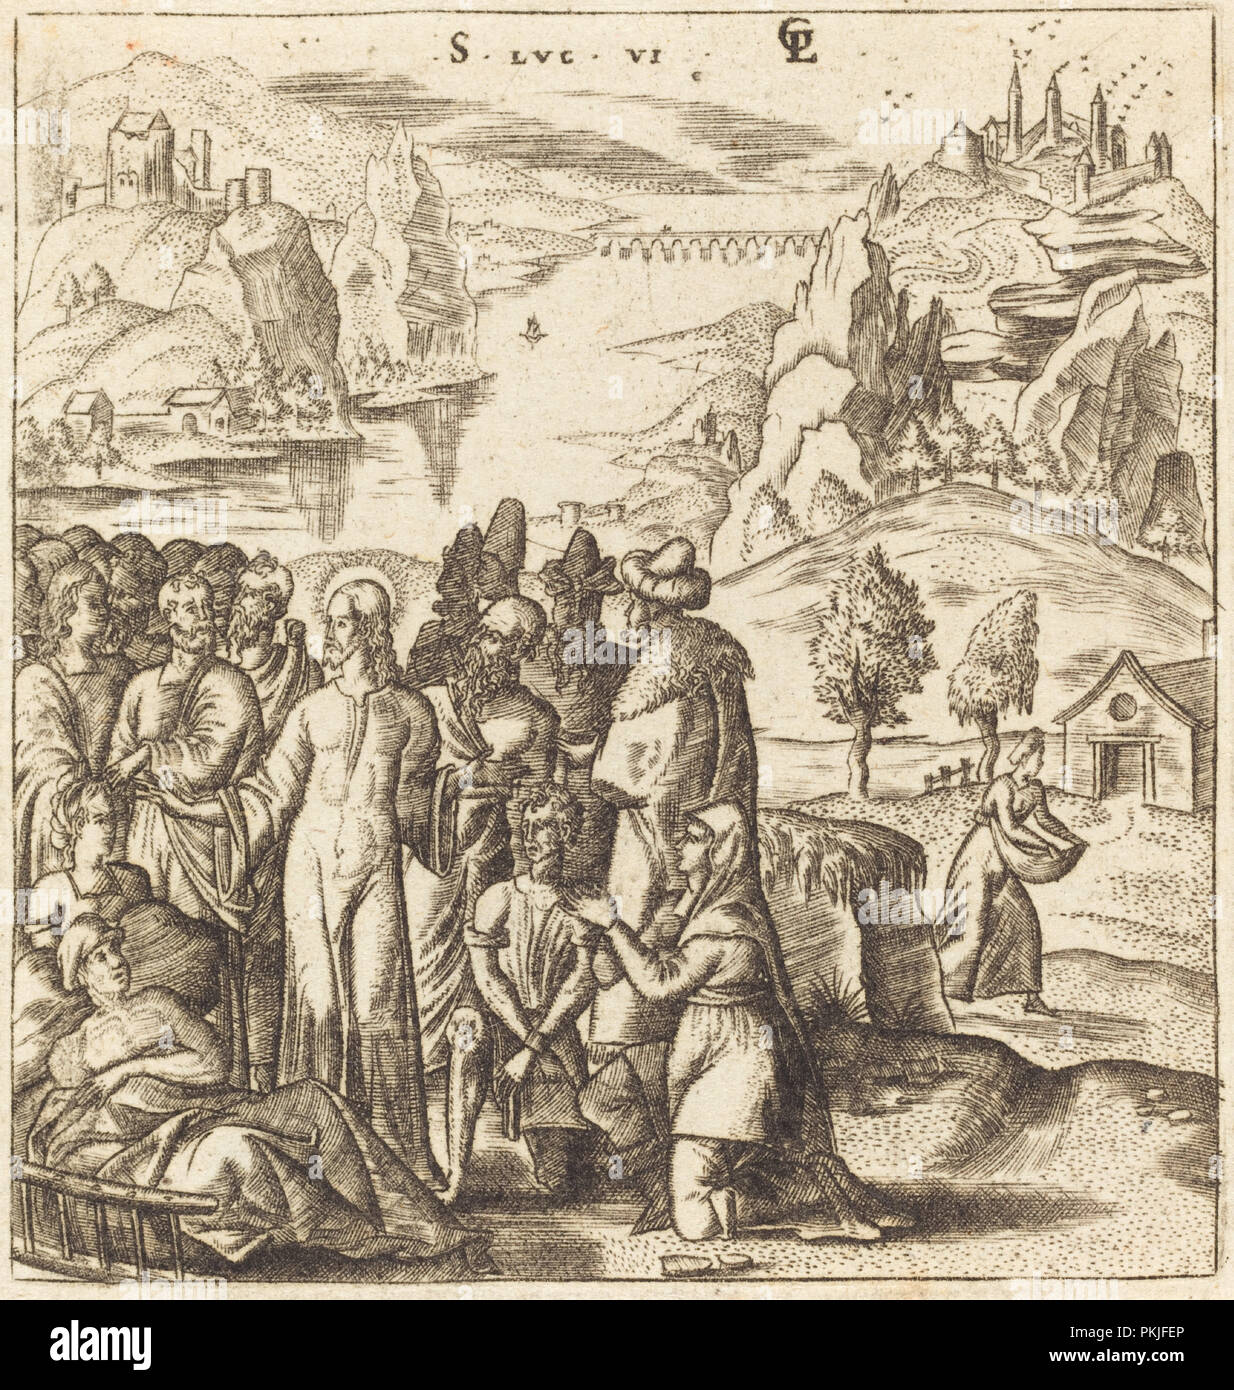 Christ Heals the Sick. Dated: probably c. 1576/1580. Medium: engraving.  Museum: National Gallery of Art, Washington DC. Author: Léonard Gaultier.